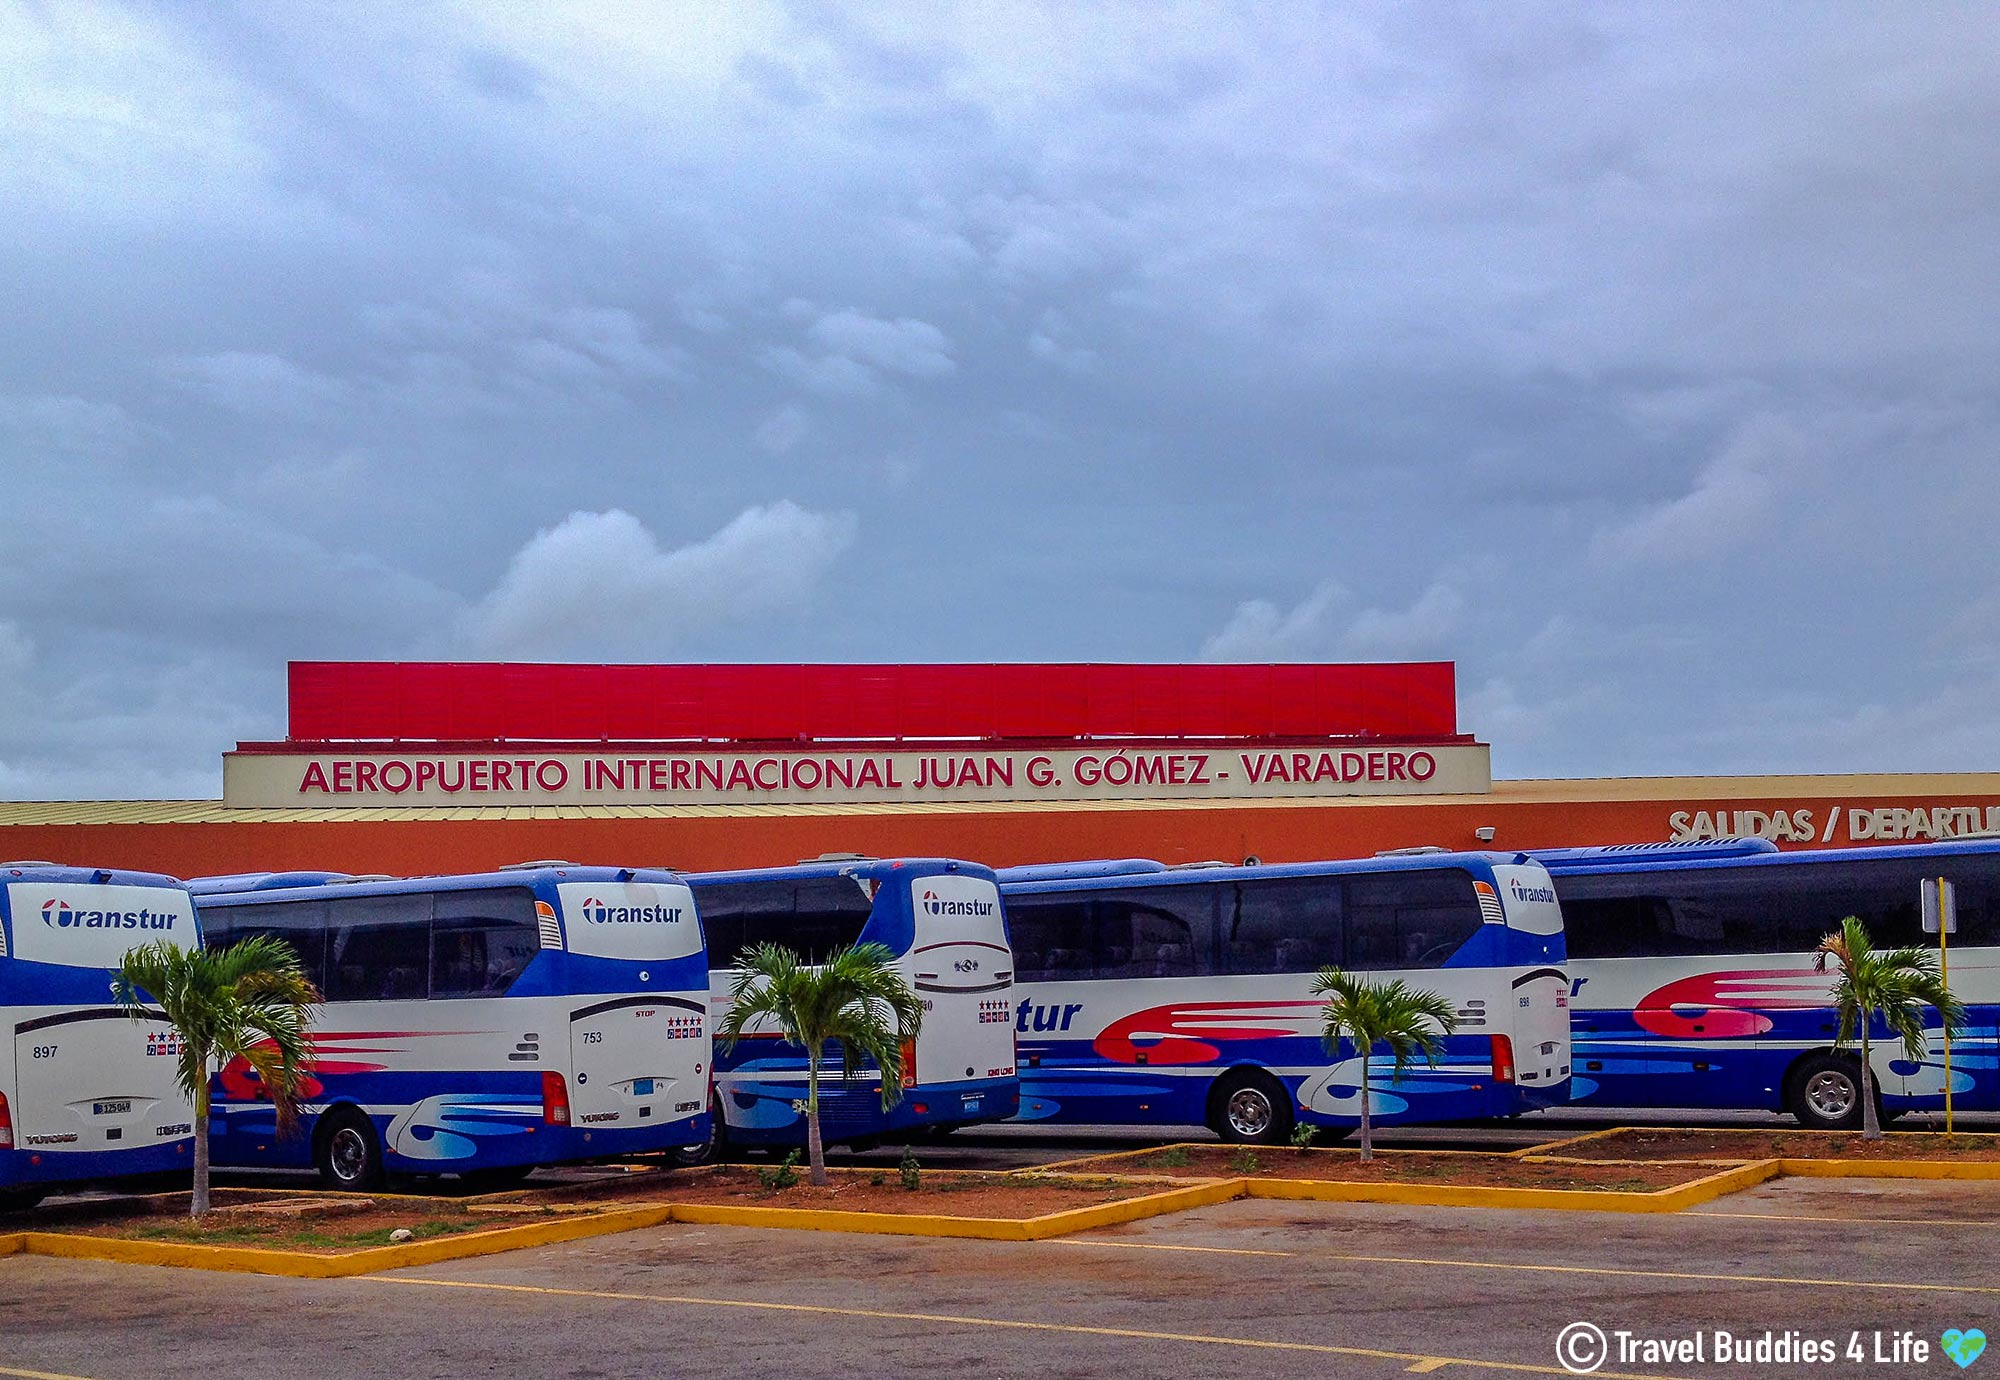 Arriving In Varadero And Taking The Resort Buses To Our Accommodations, Cuba Vacation